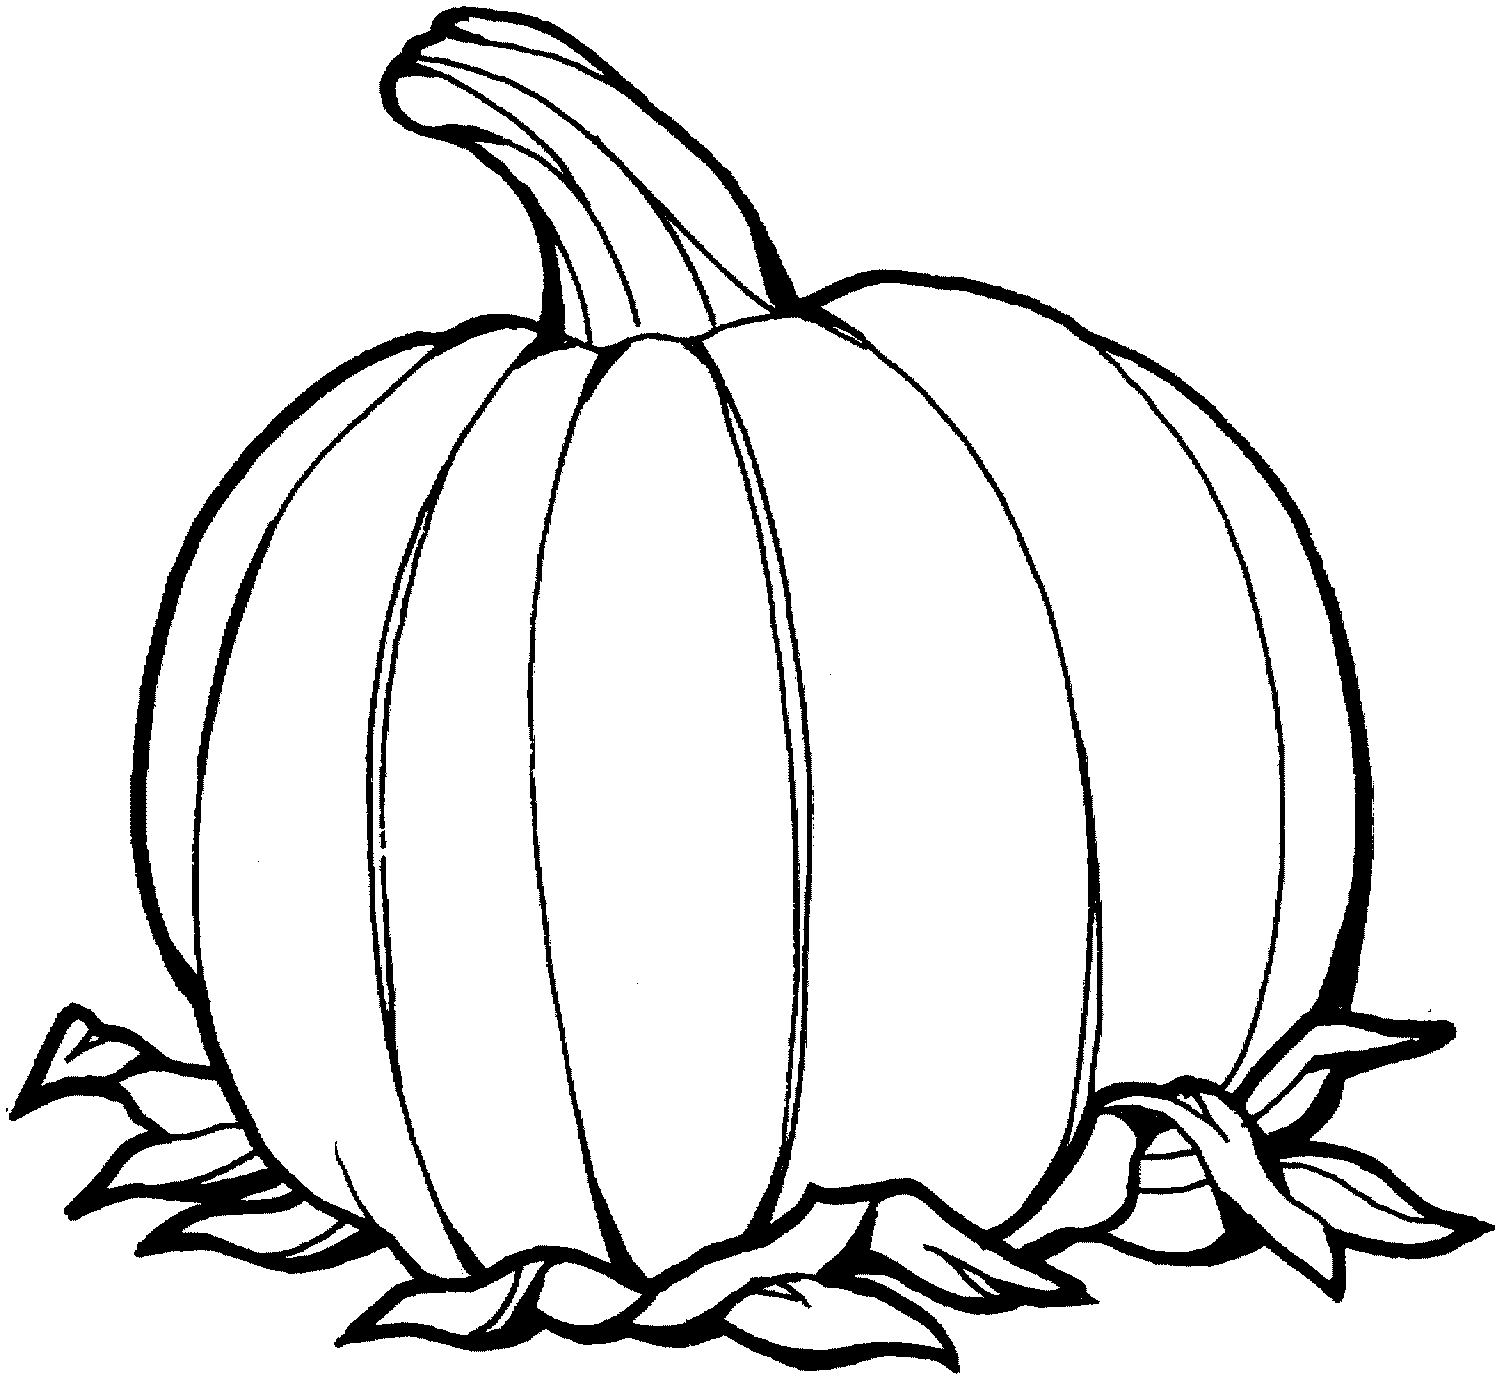 Free Printable Pumpkin Coloring Pages - Free Printable Pumpkin Coloring Pages for Kids